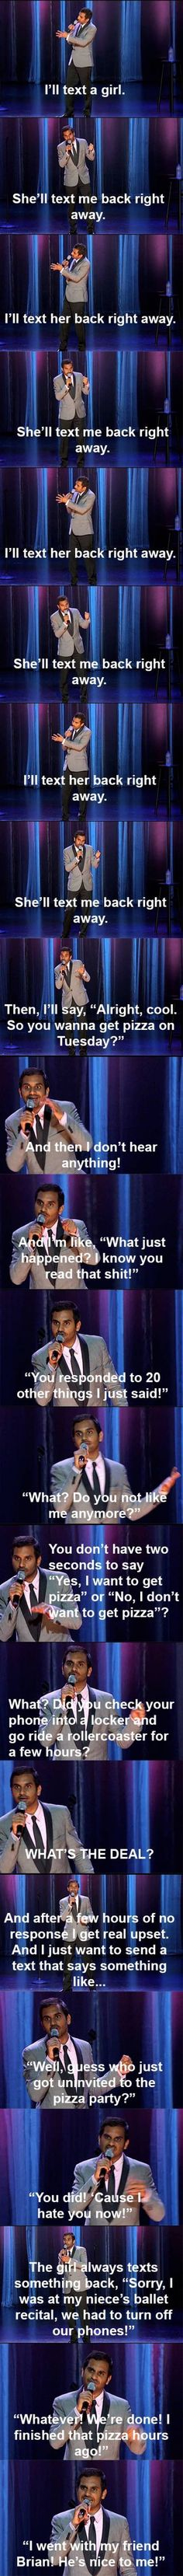 Aziz on texting. So true.